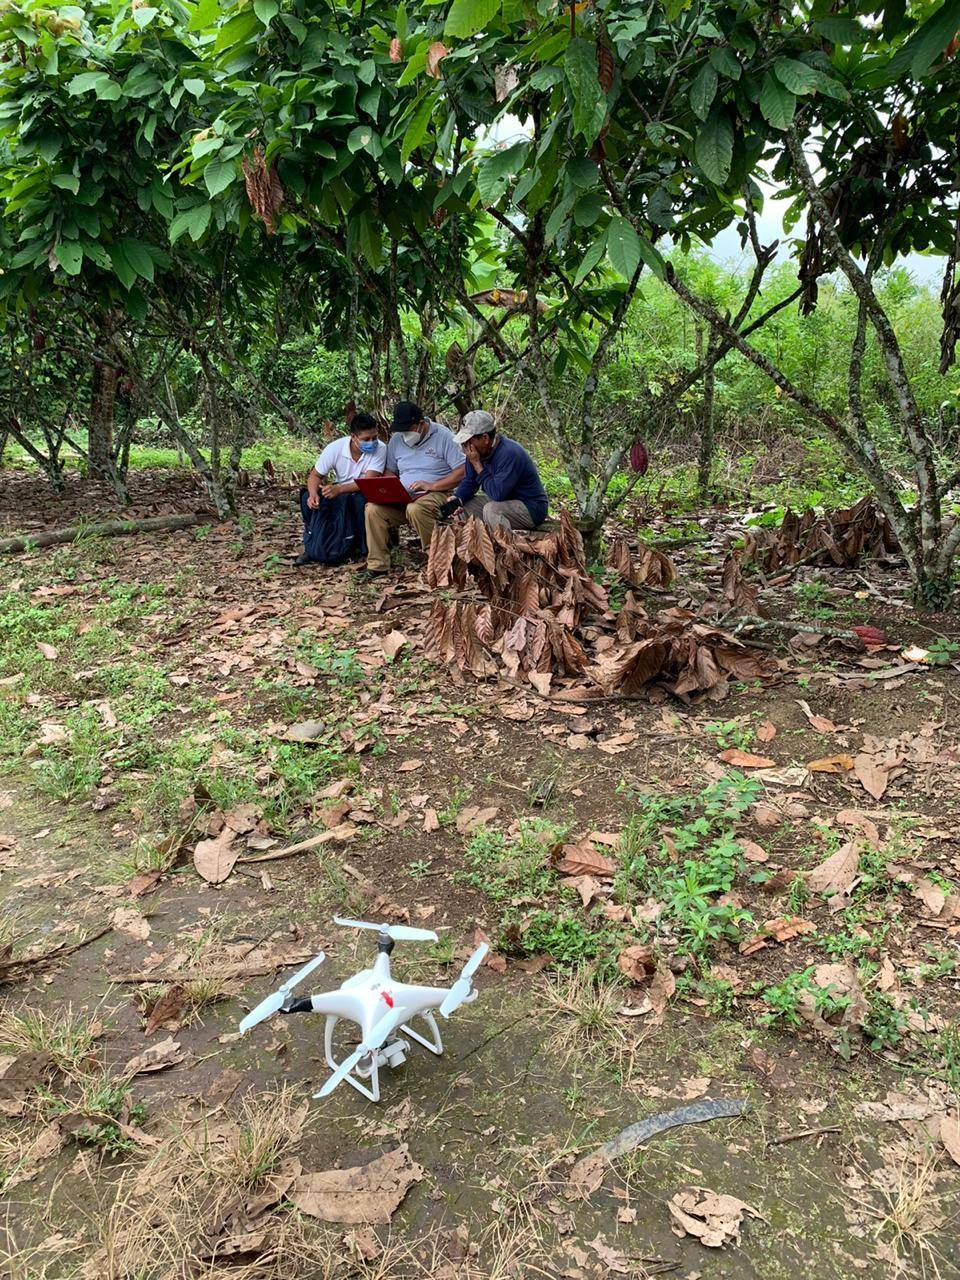 Farm mapping was undertaken by drone technology